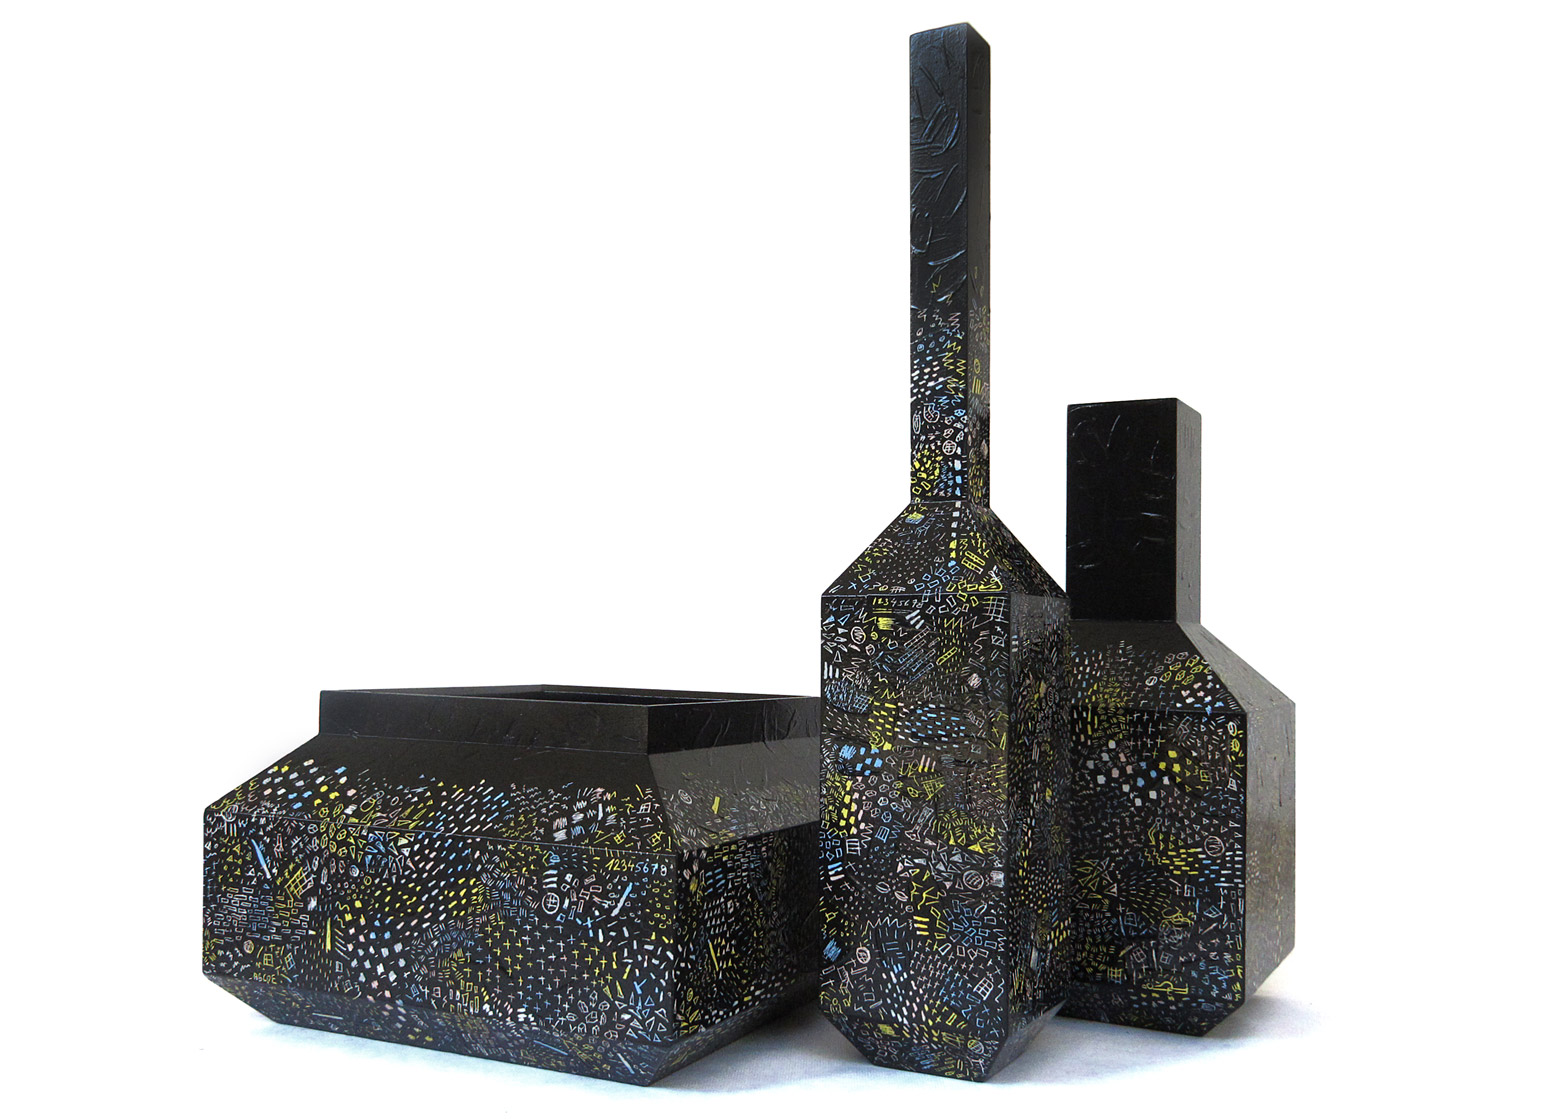 Black etched vases by Italy Ohaly